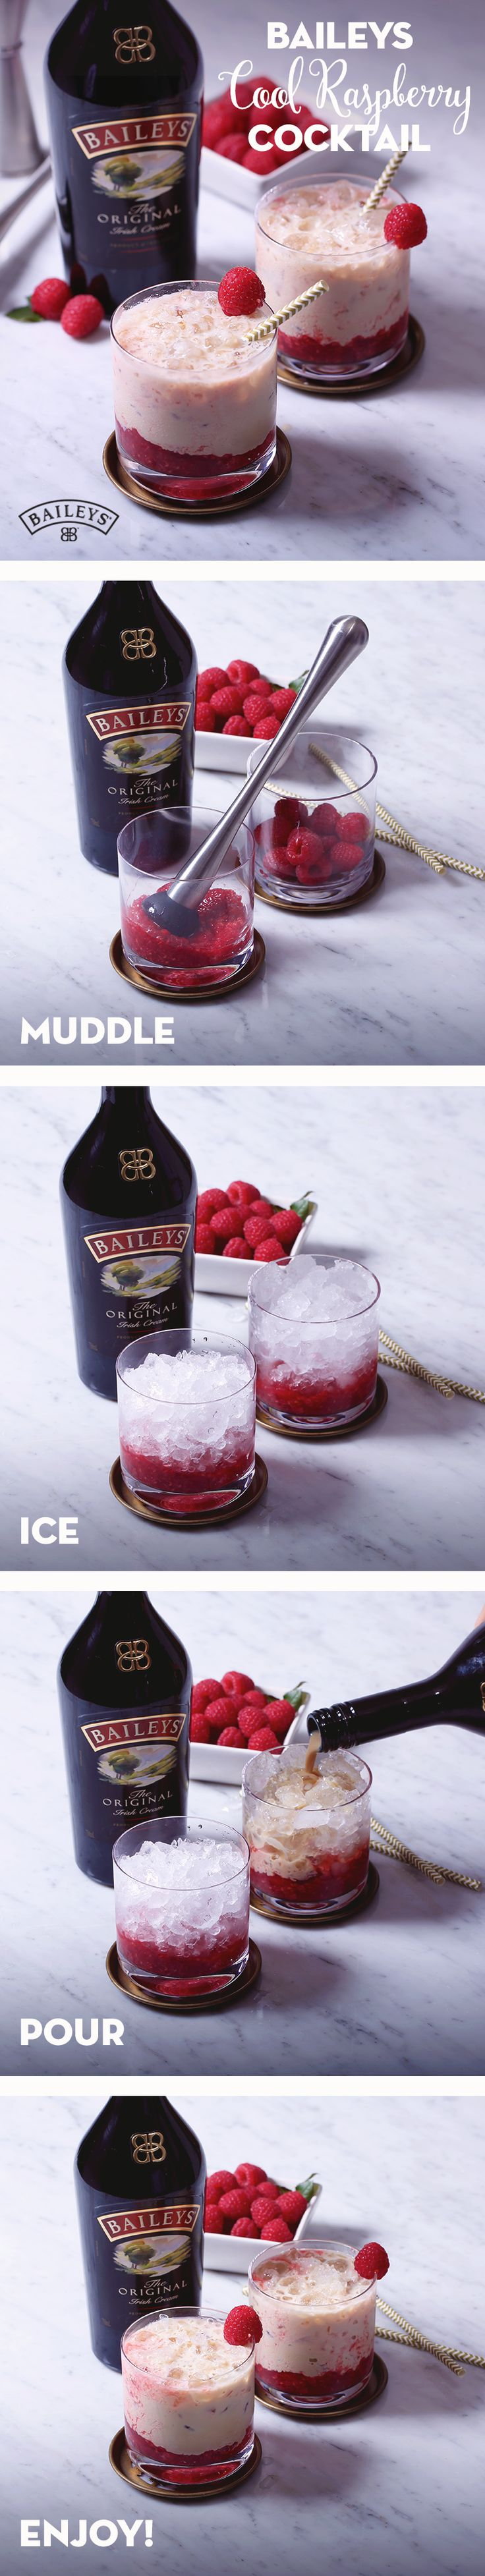 Three-day weekend coming up? Sweeten up your day off with this simple and easy Cool Raspberry cocktail recipe. Made with crushed ice, raspberries and Baileys, its the perfect cold, refreshing tasting summer drink for livening up the party.